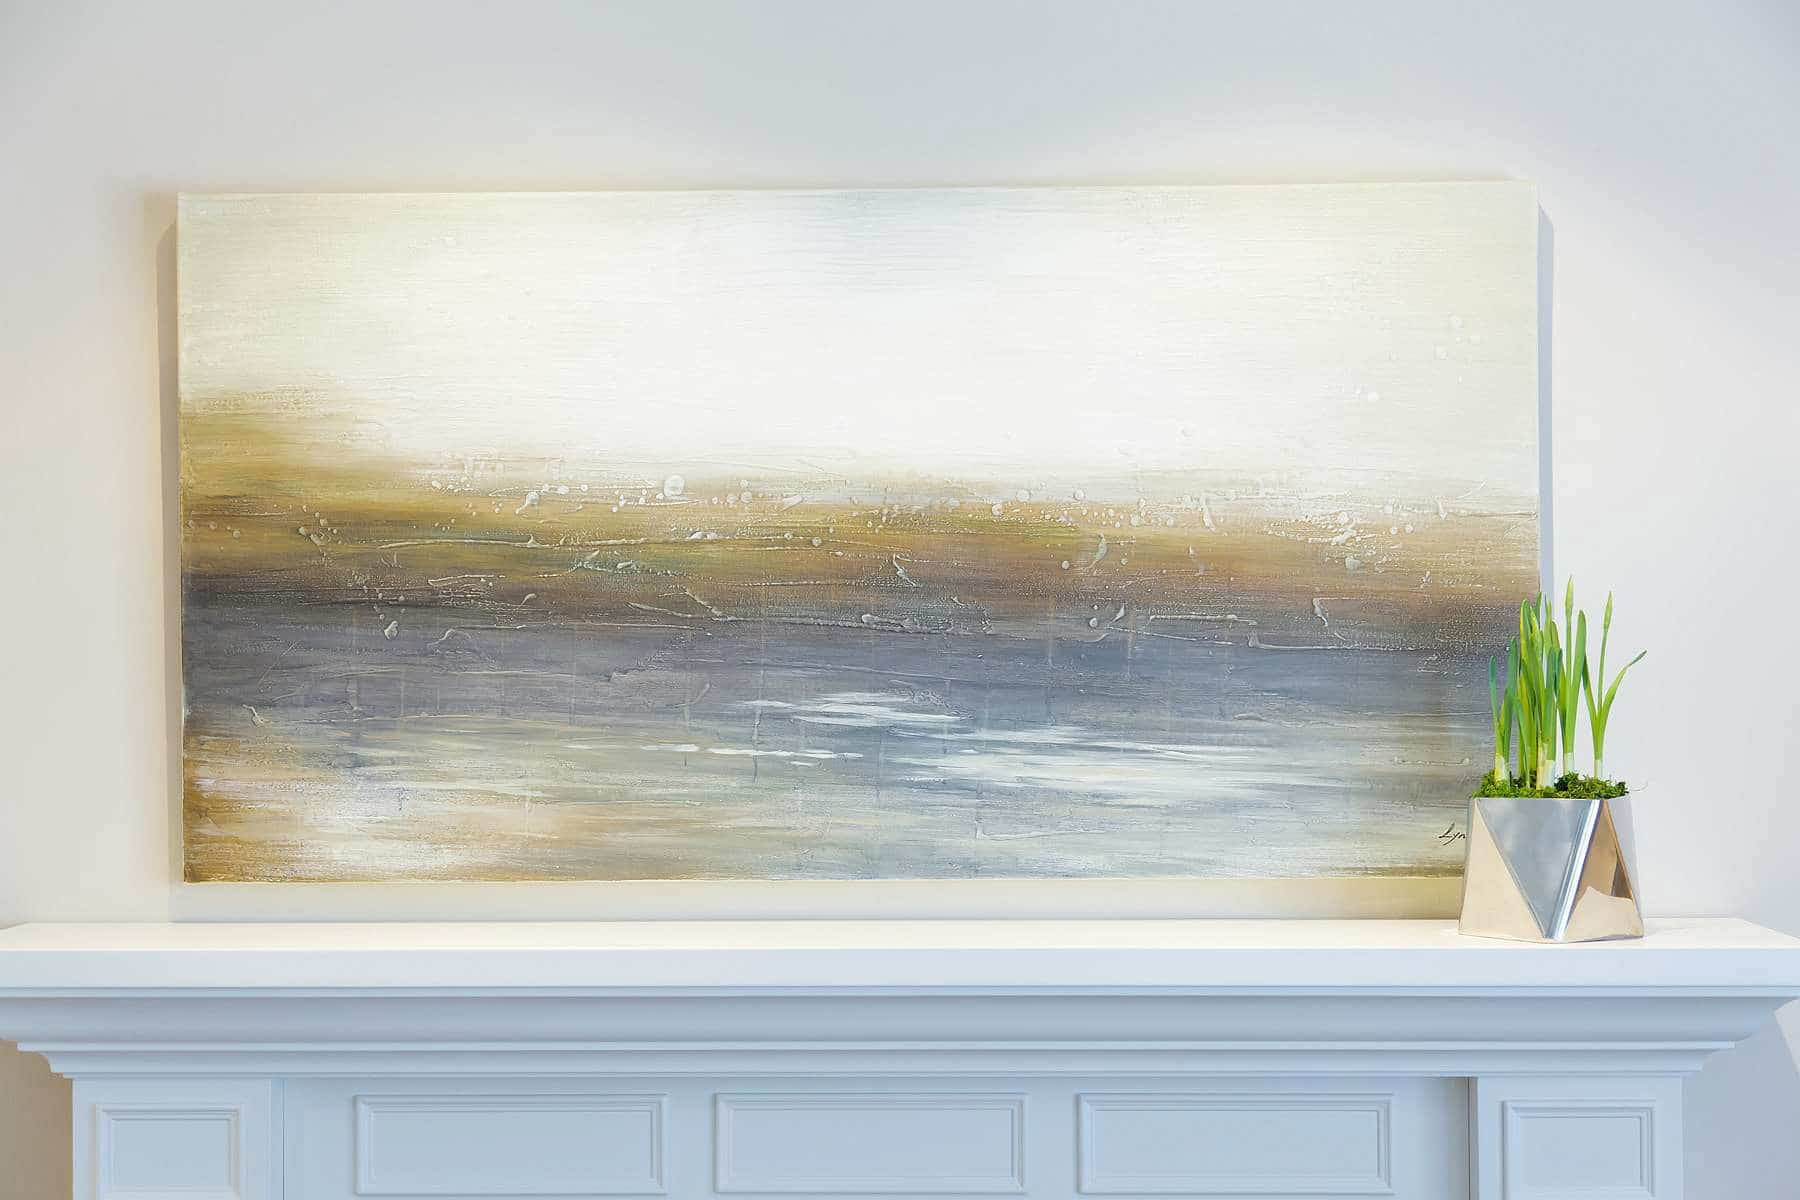 Fireplace mantel close-up featuring wood paneling and abstract landscape painting